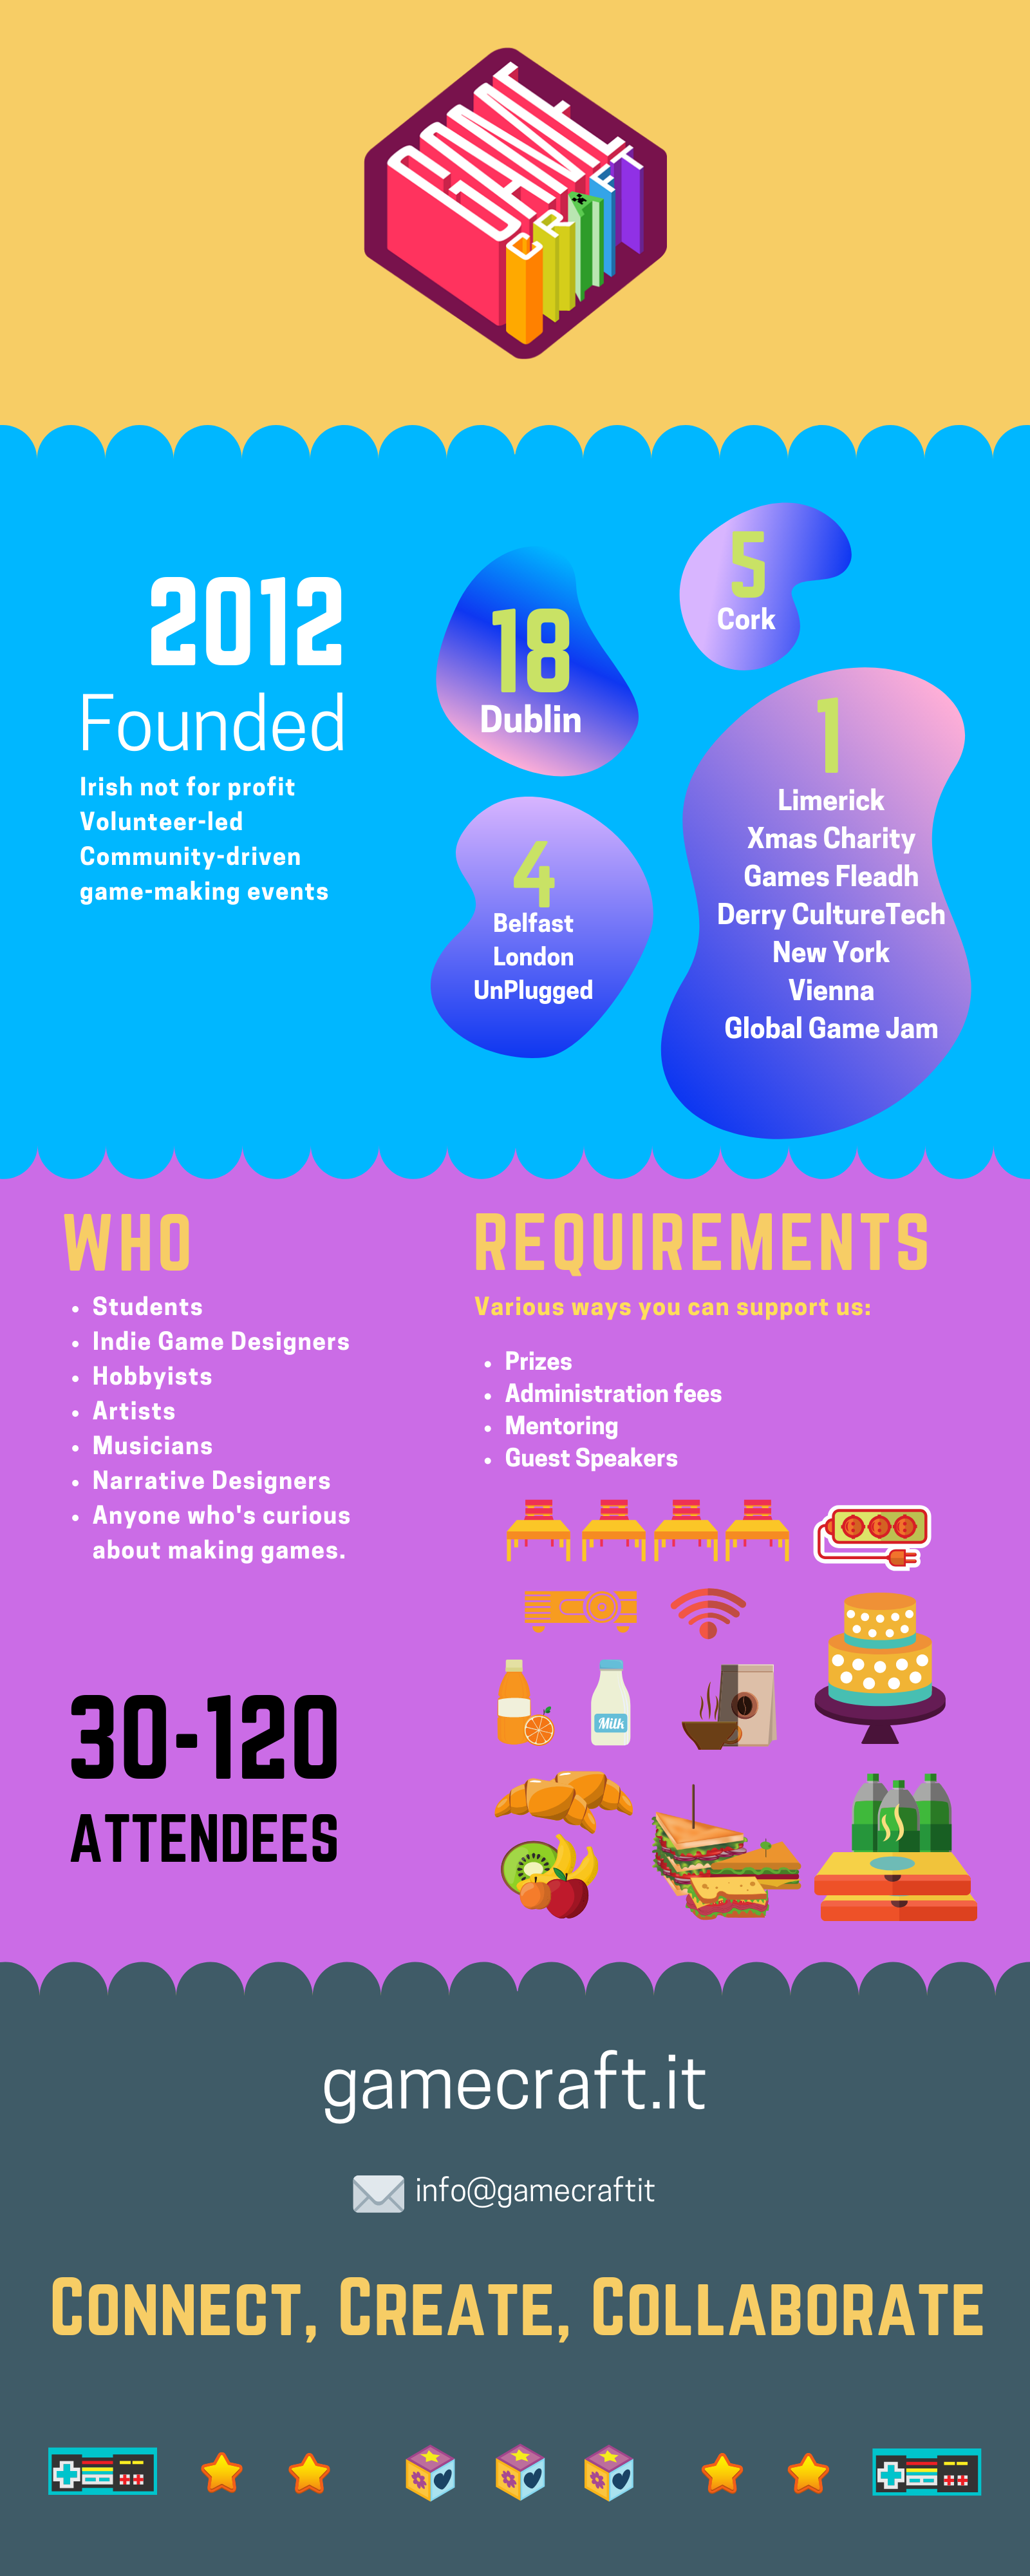 GameCraft Infographic (1).png